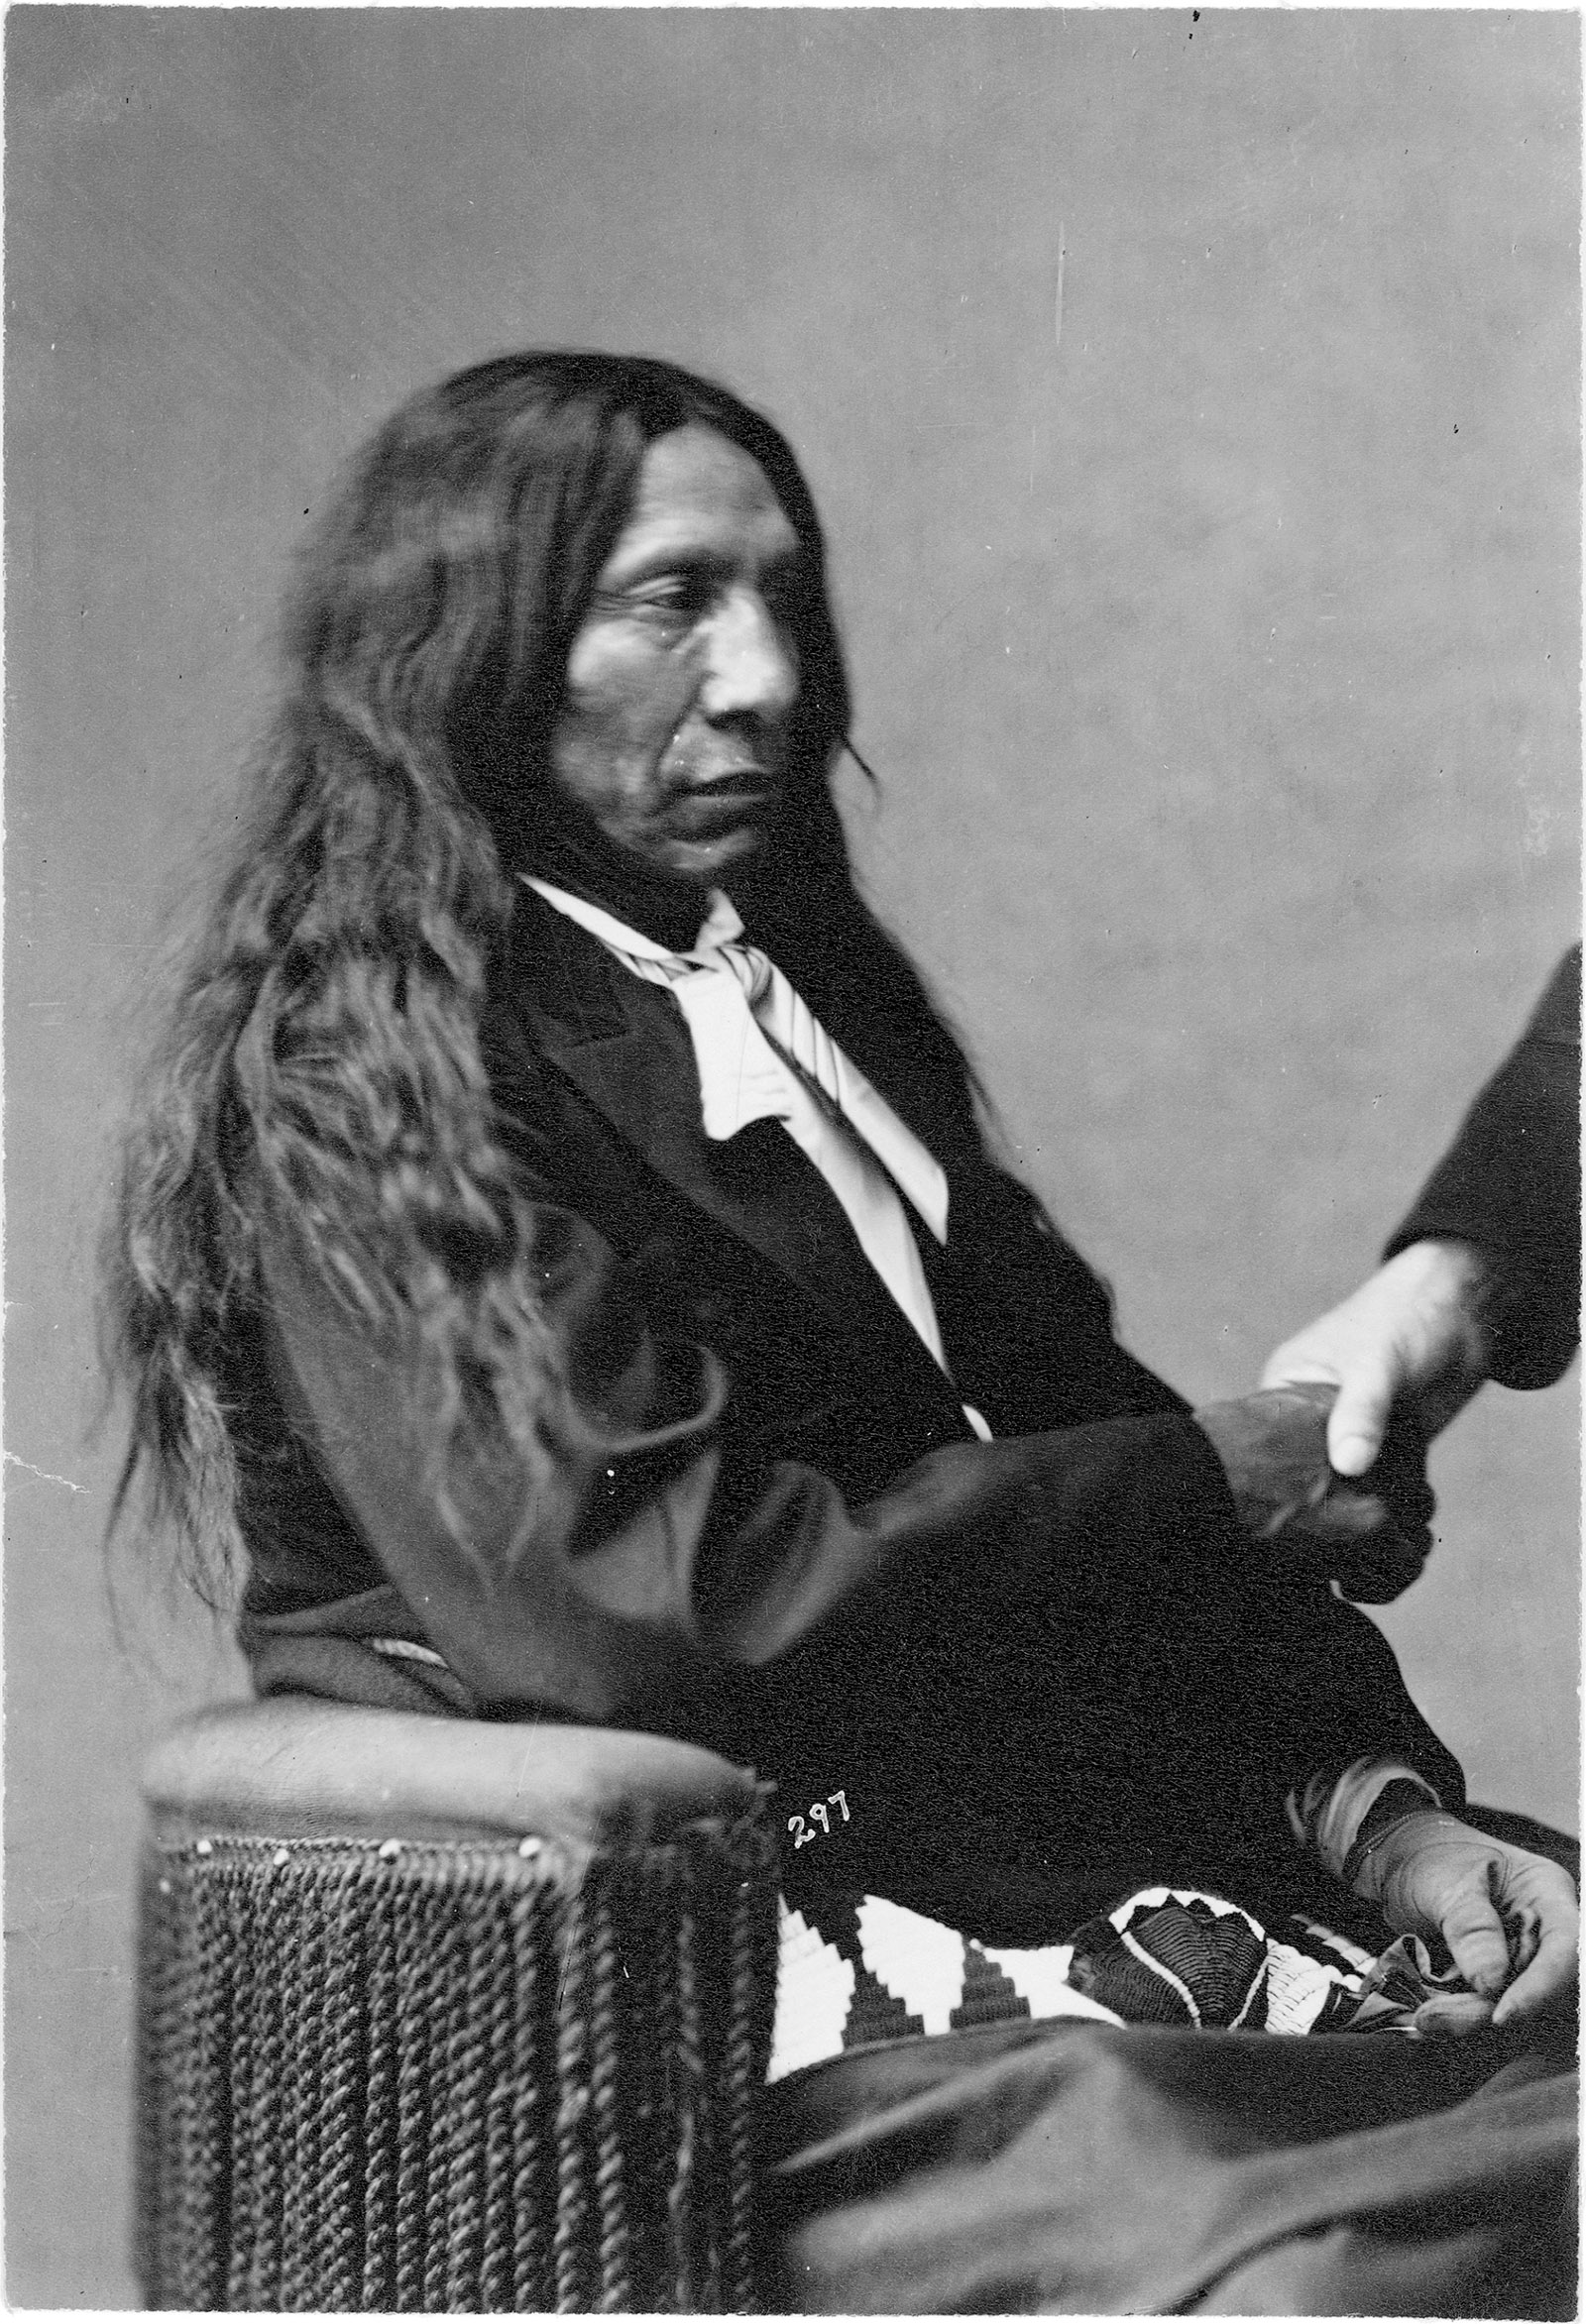 Oglala Lakota Chief Red Cloud in a formal portrait arranged by William Blackmore, whose hand is visible at right